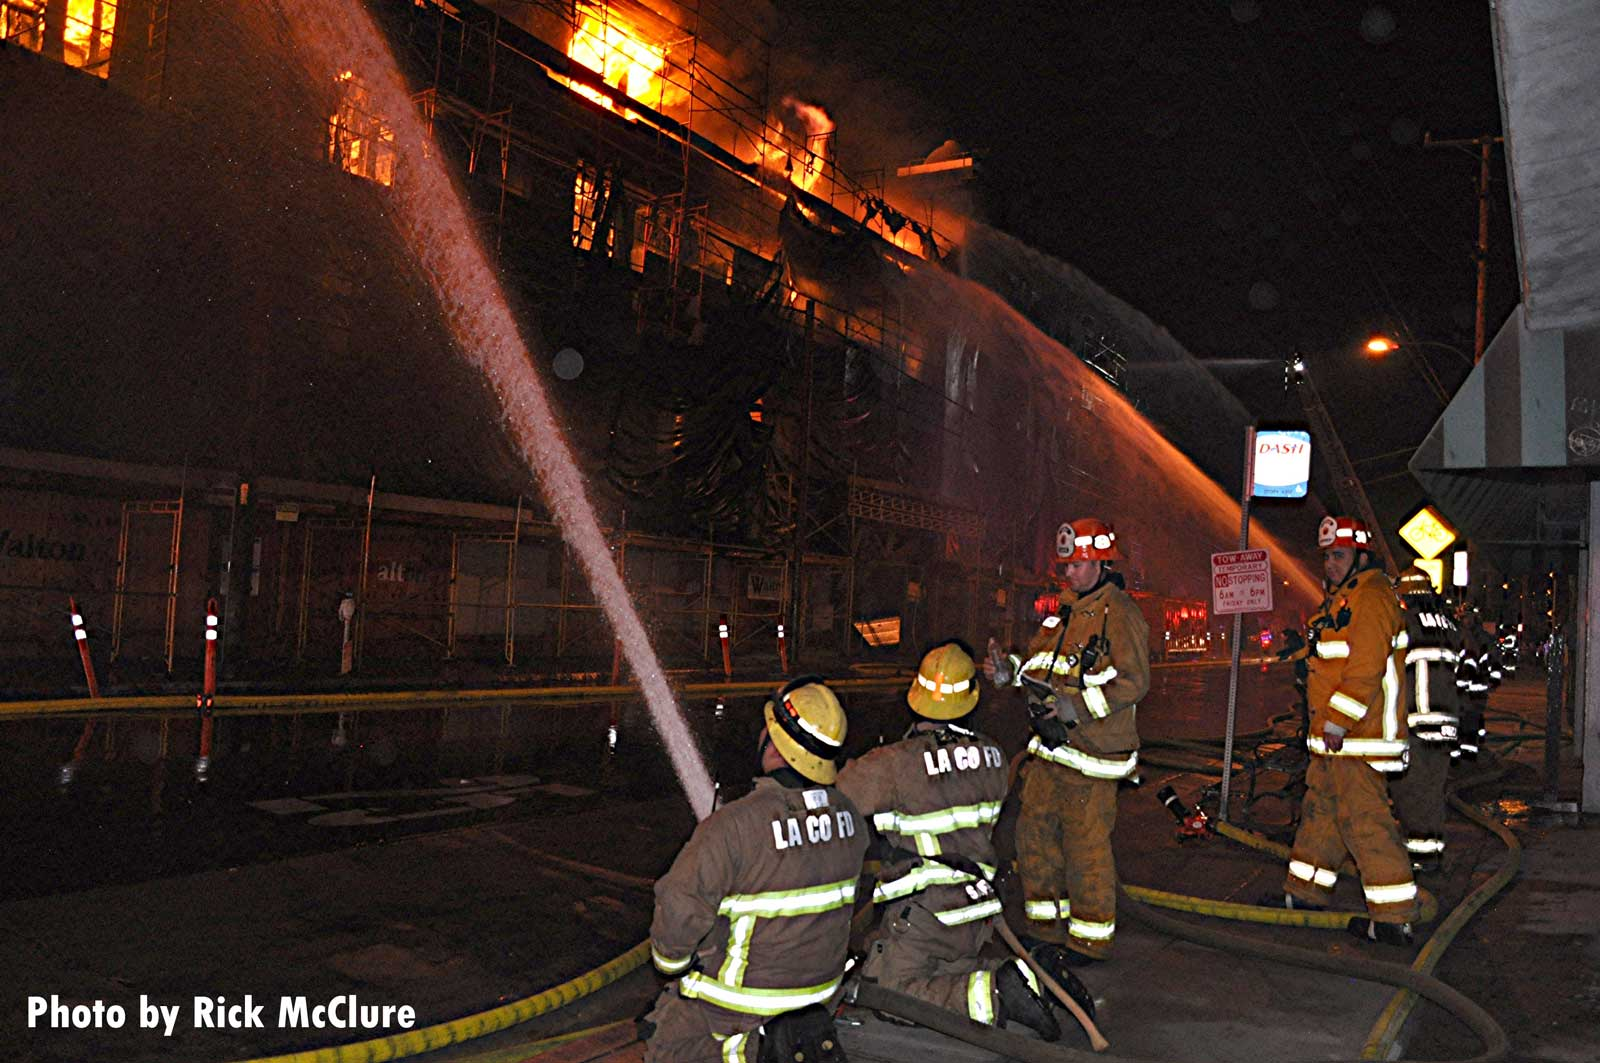 Firefighters with hoselines at the fire